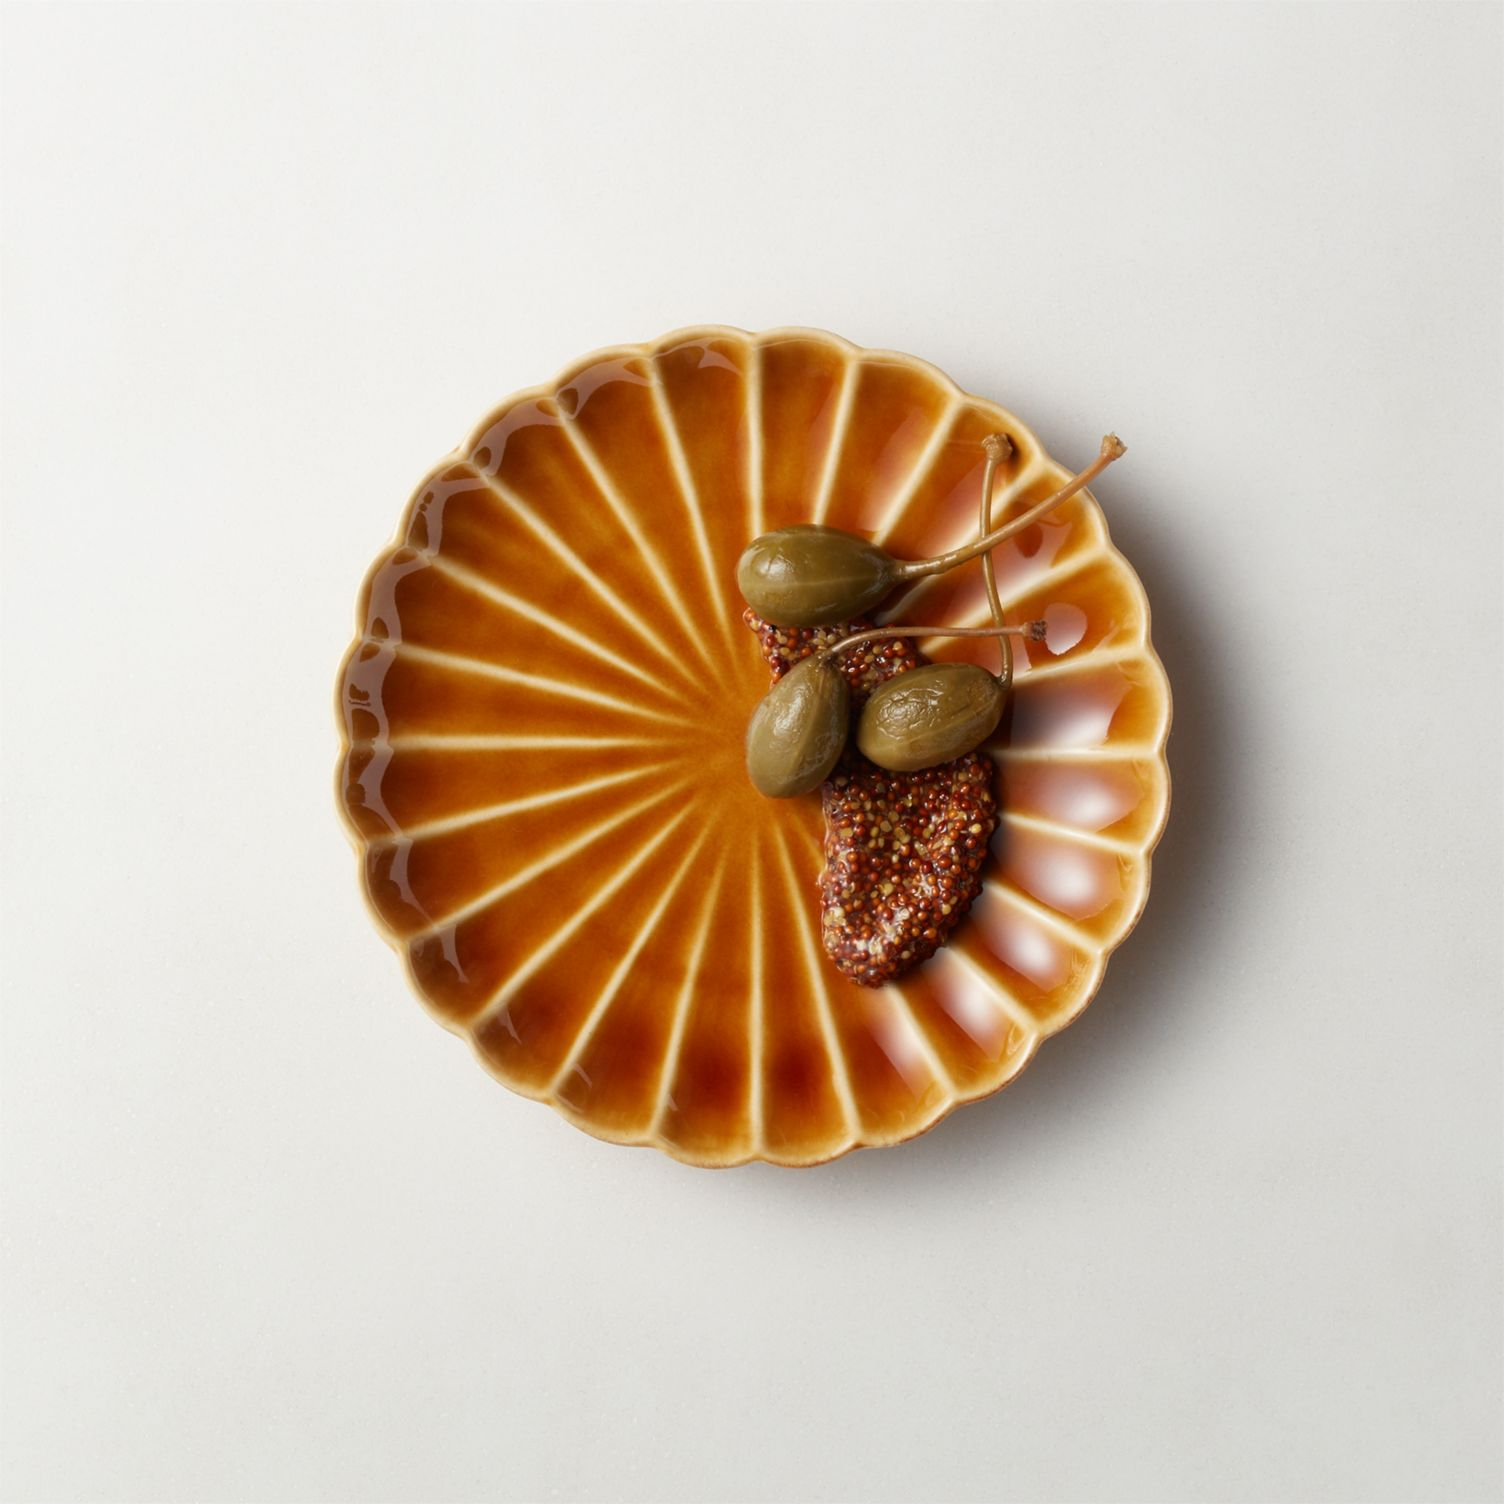 Scalloped appetizer plate in camel brown